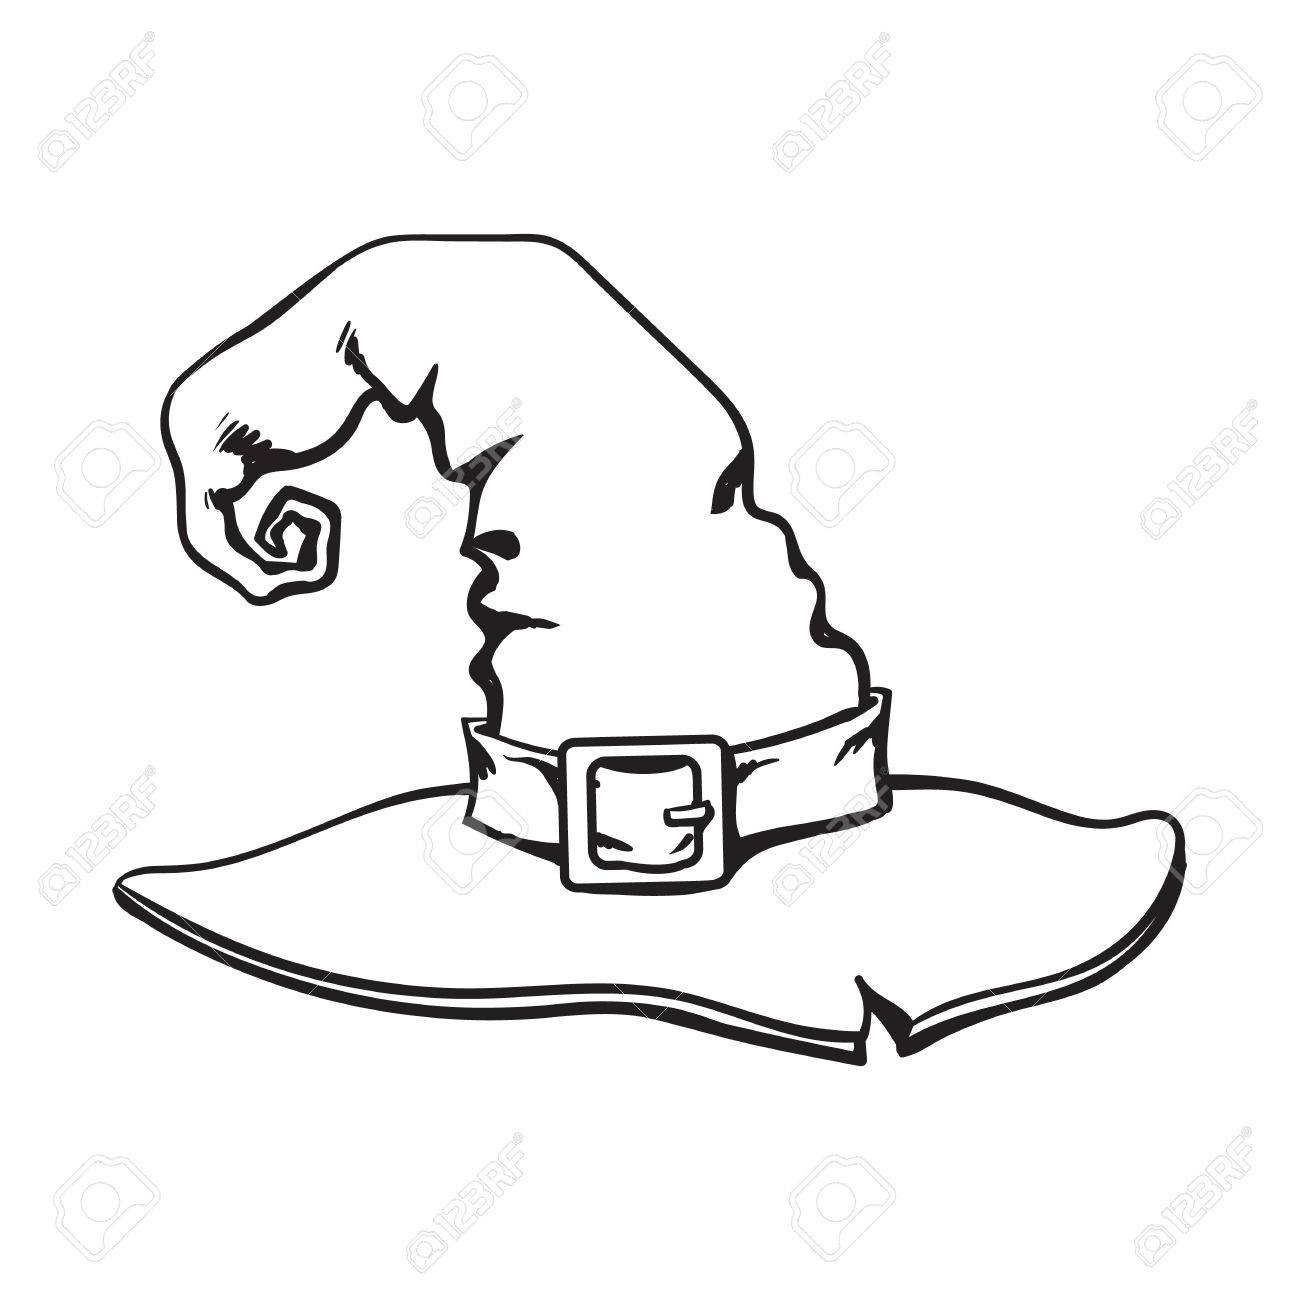 Halloween Vector Black And White.Black And White Wizard Pointed Hat Halloween Decoration Element